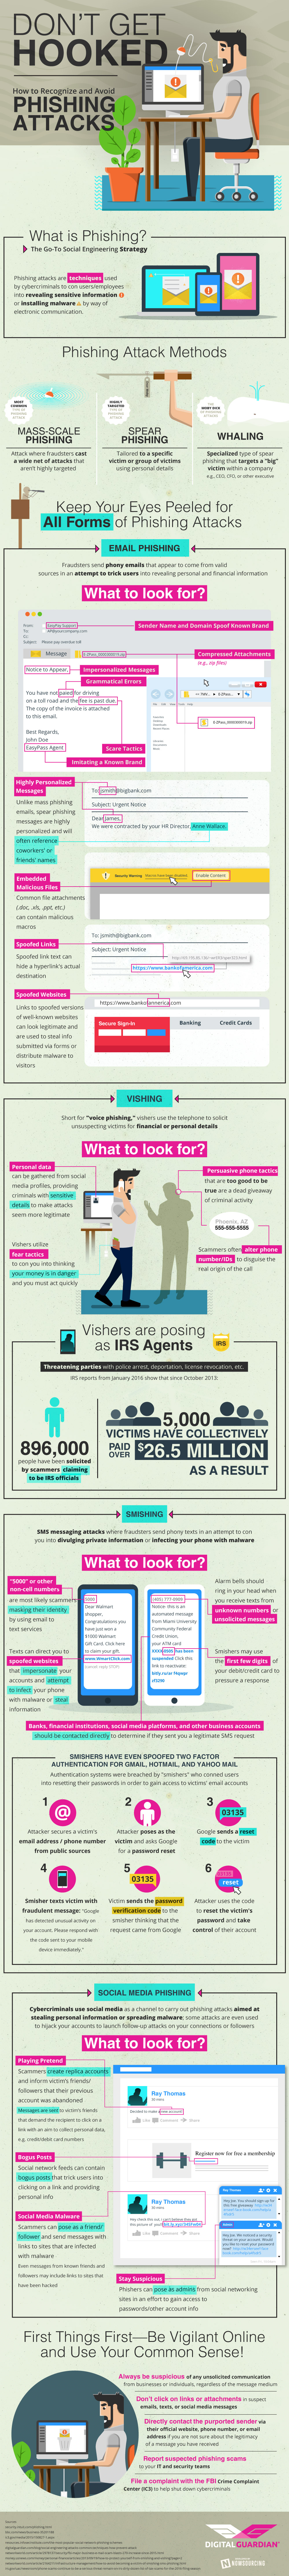 Don't get hooked - How to recognise and avoid phishing attacks